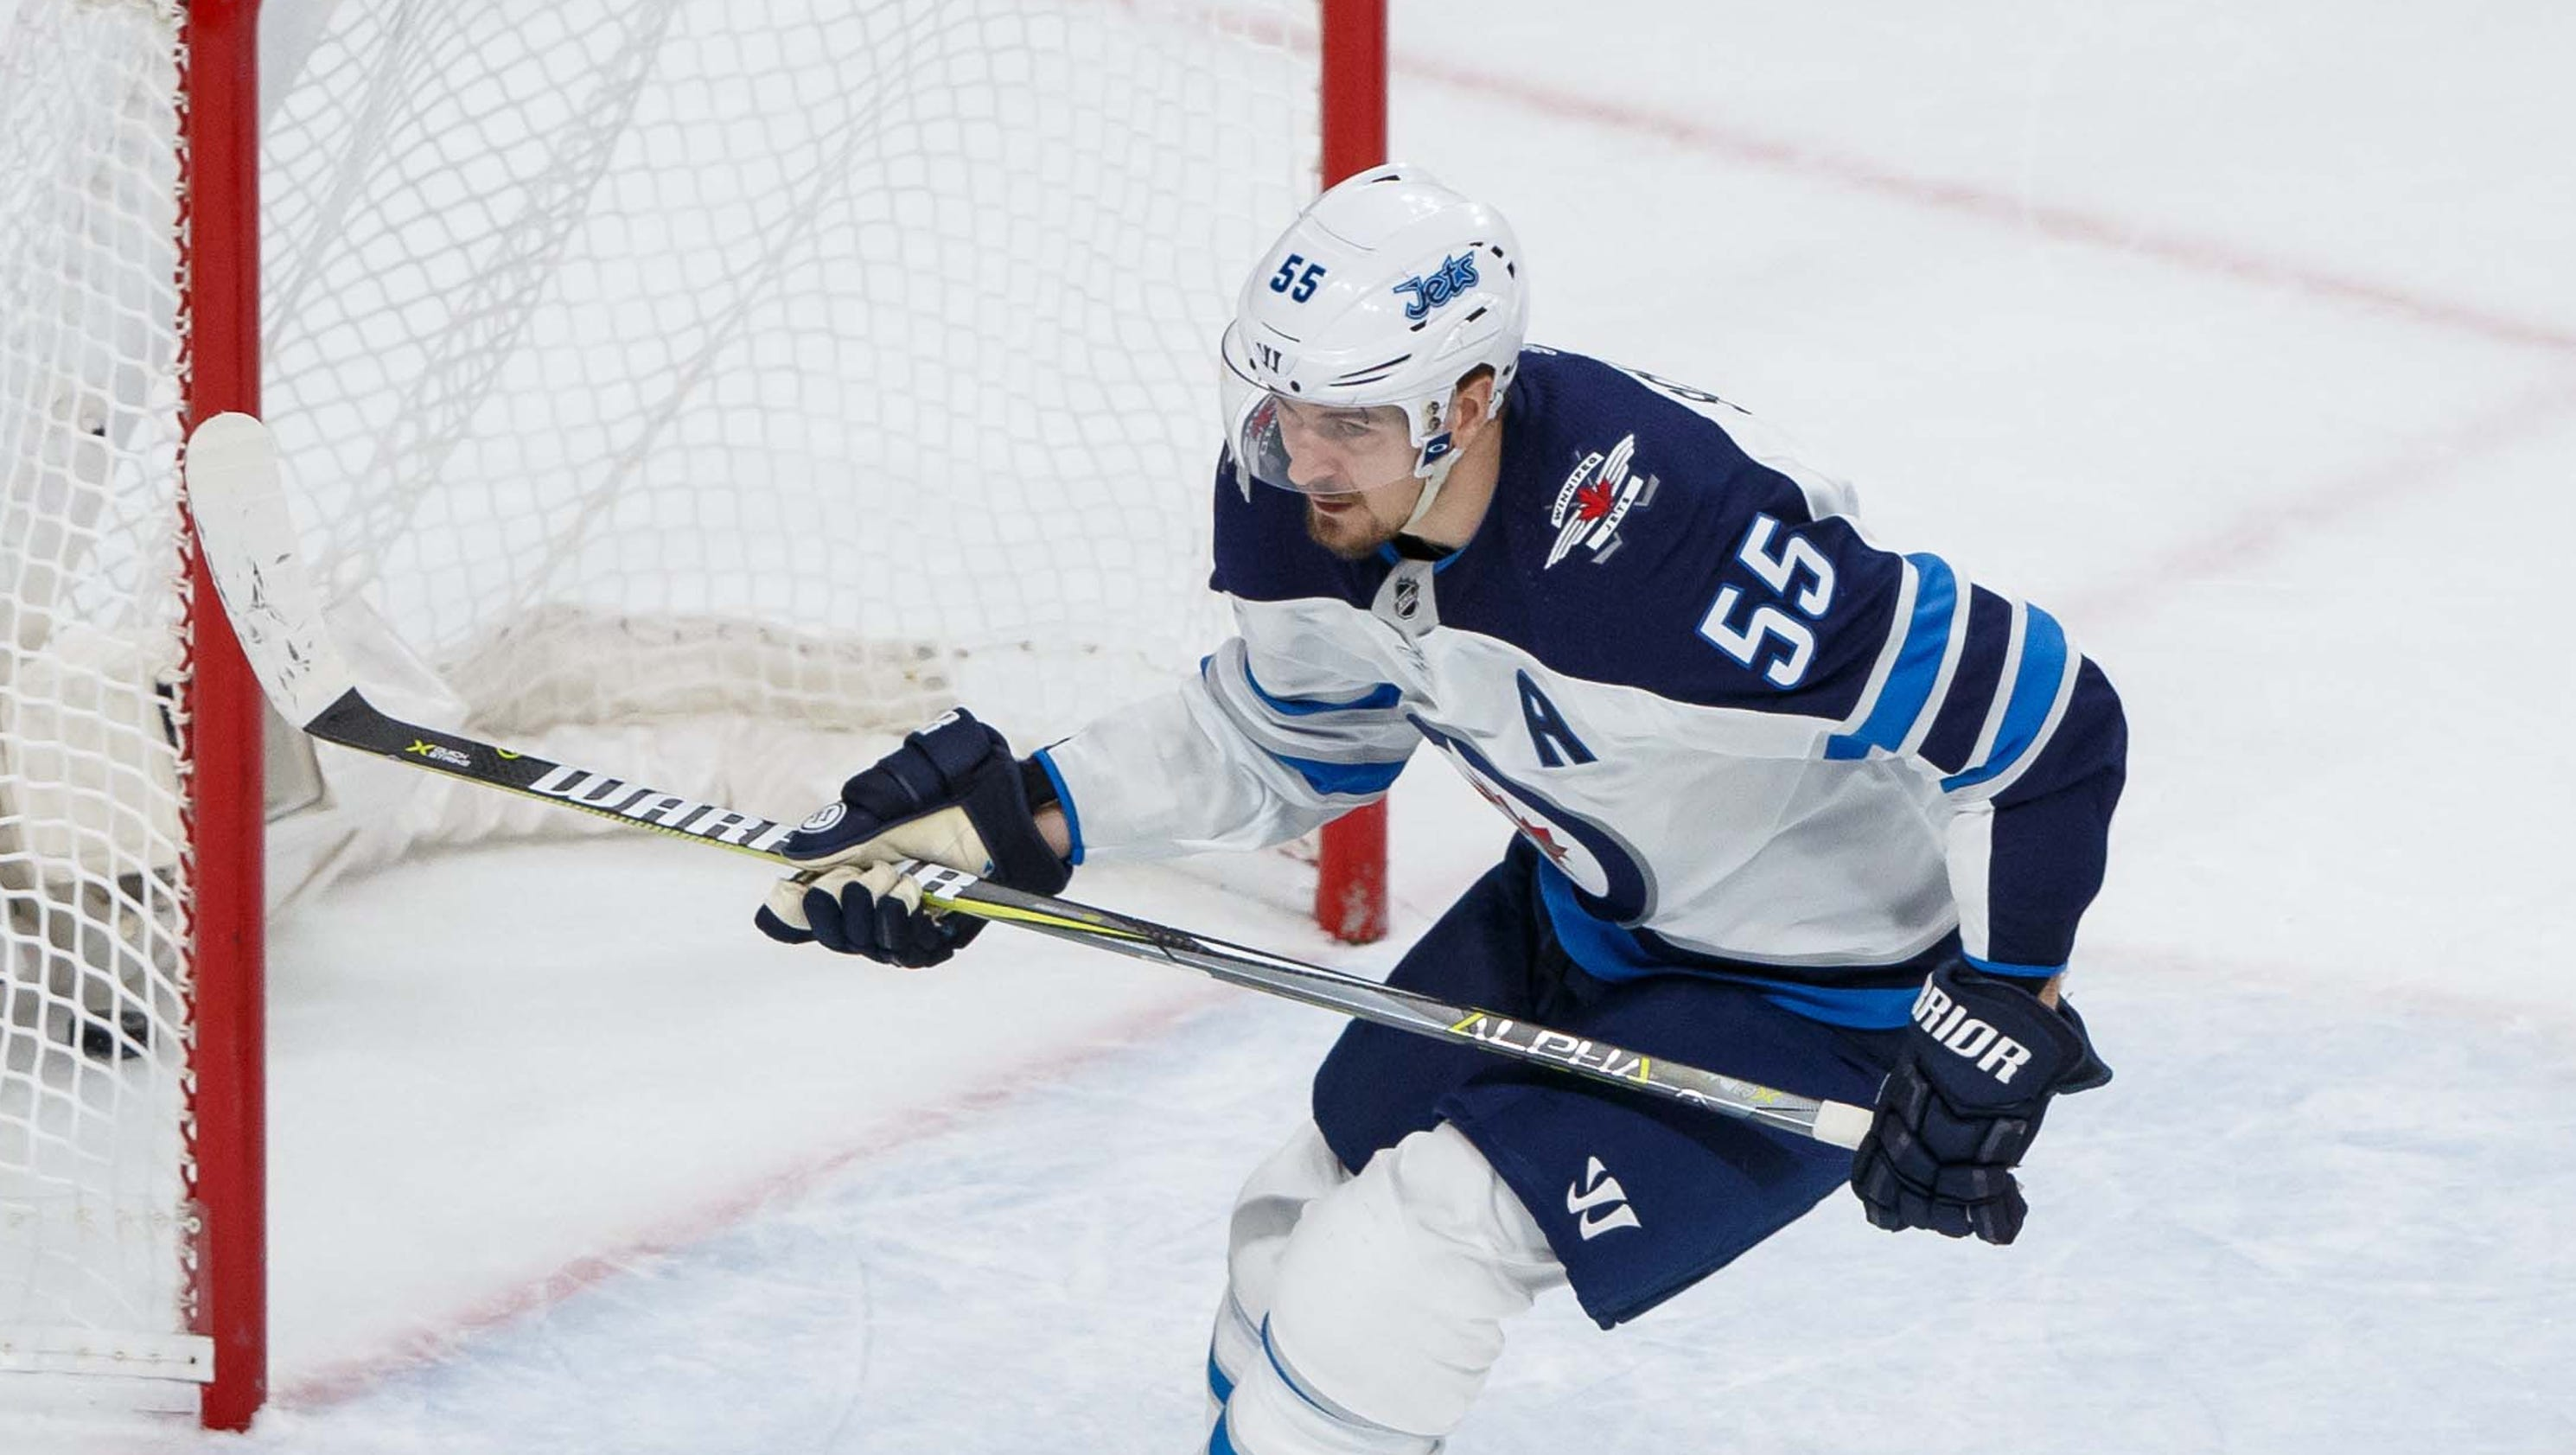 636596033540184929-usp-nhl--stanley-cup-playoffs-winnipeg-jets-at-min.2